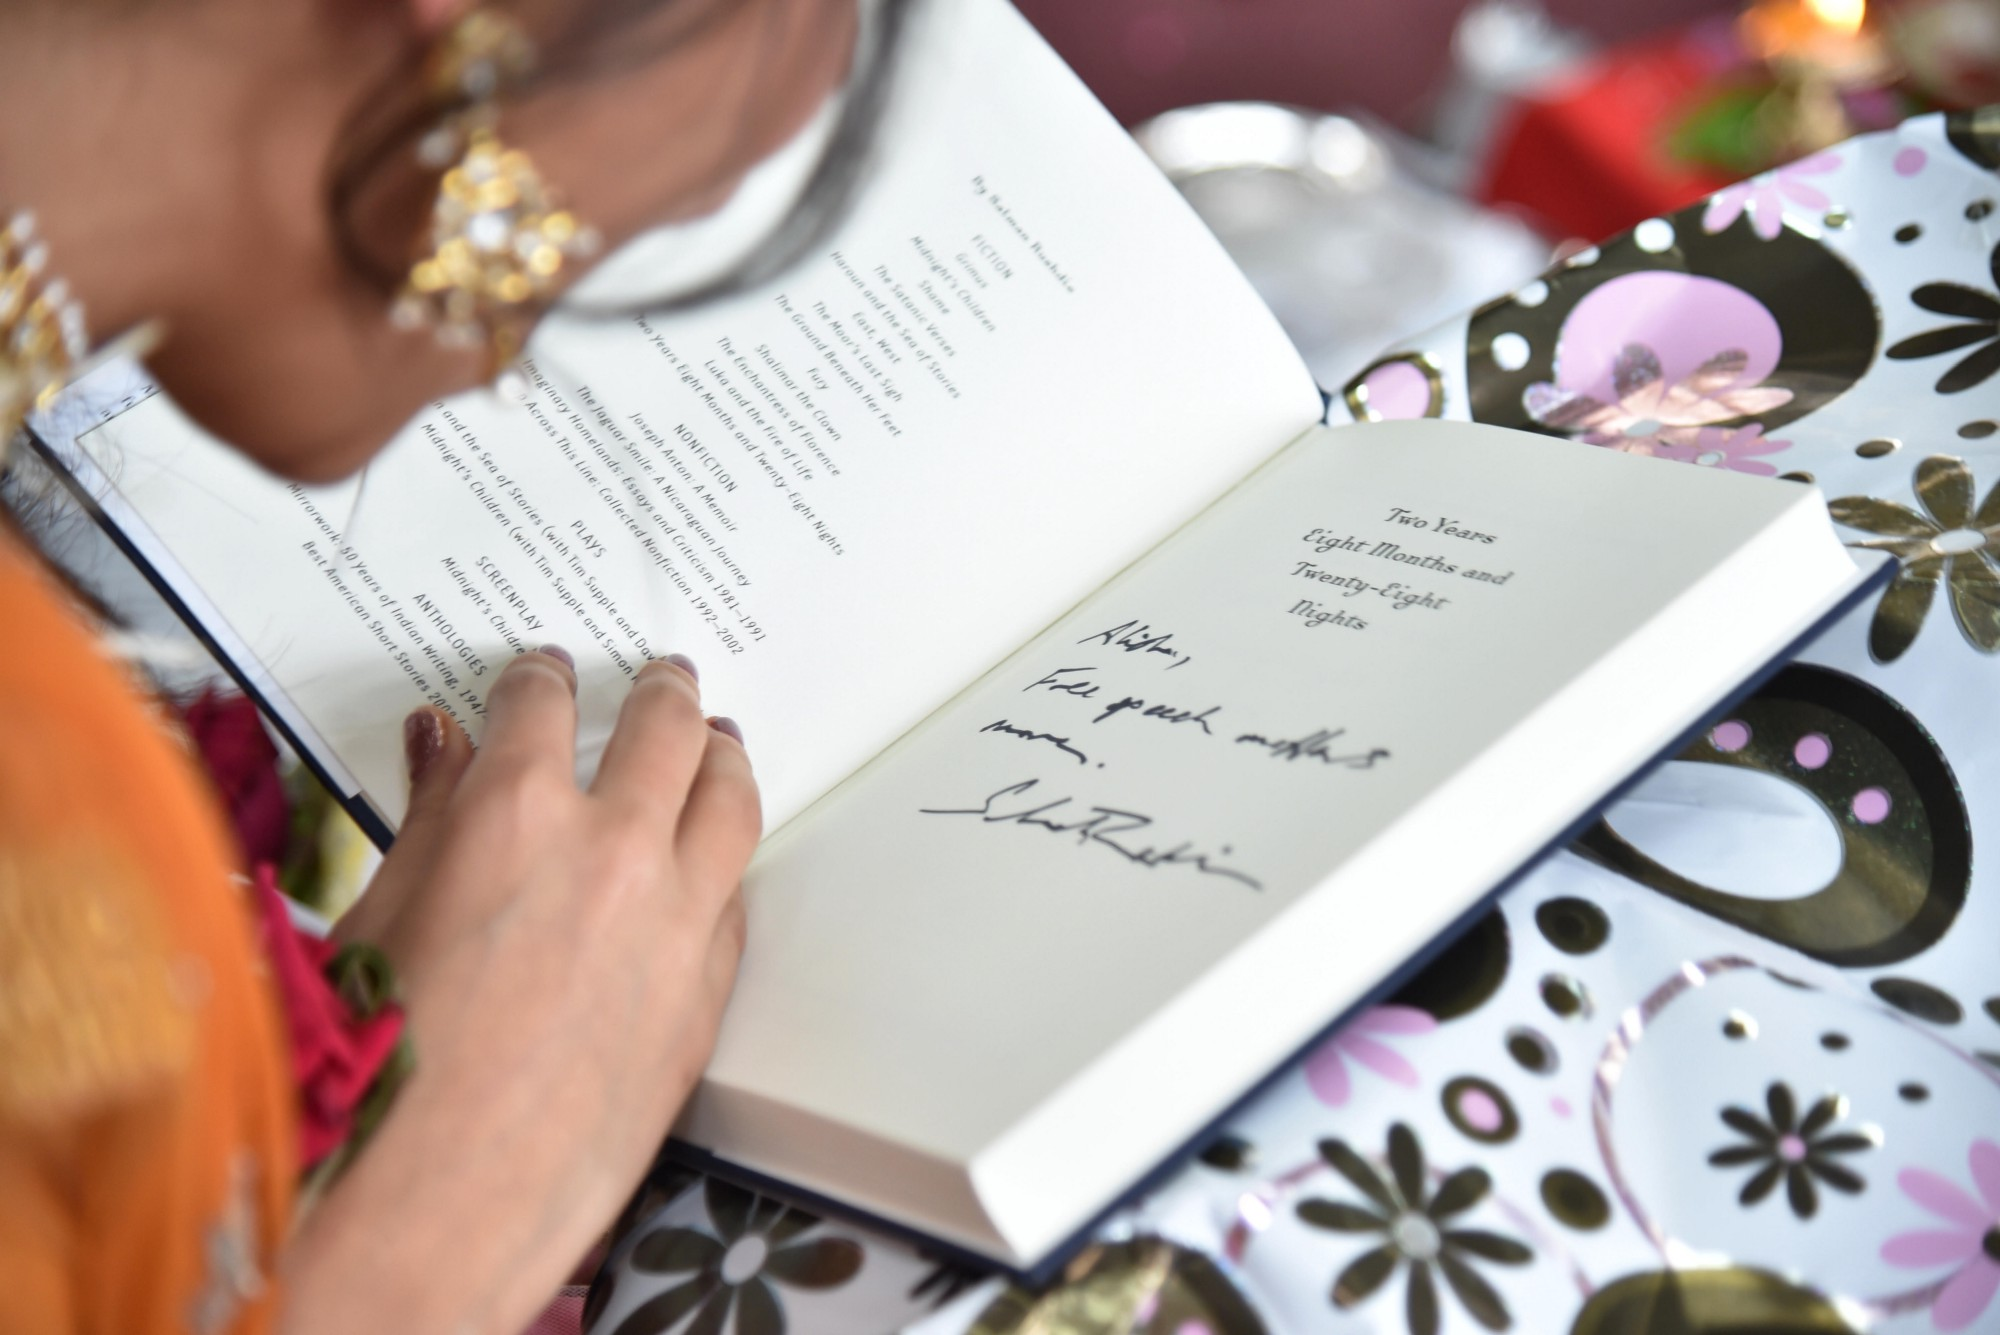 The most popular literary works of love